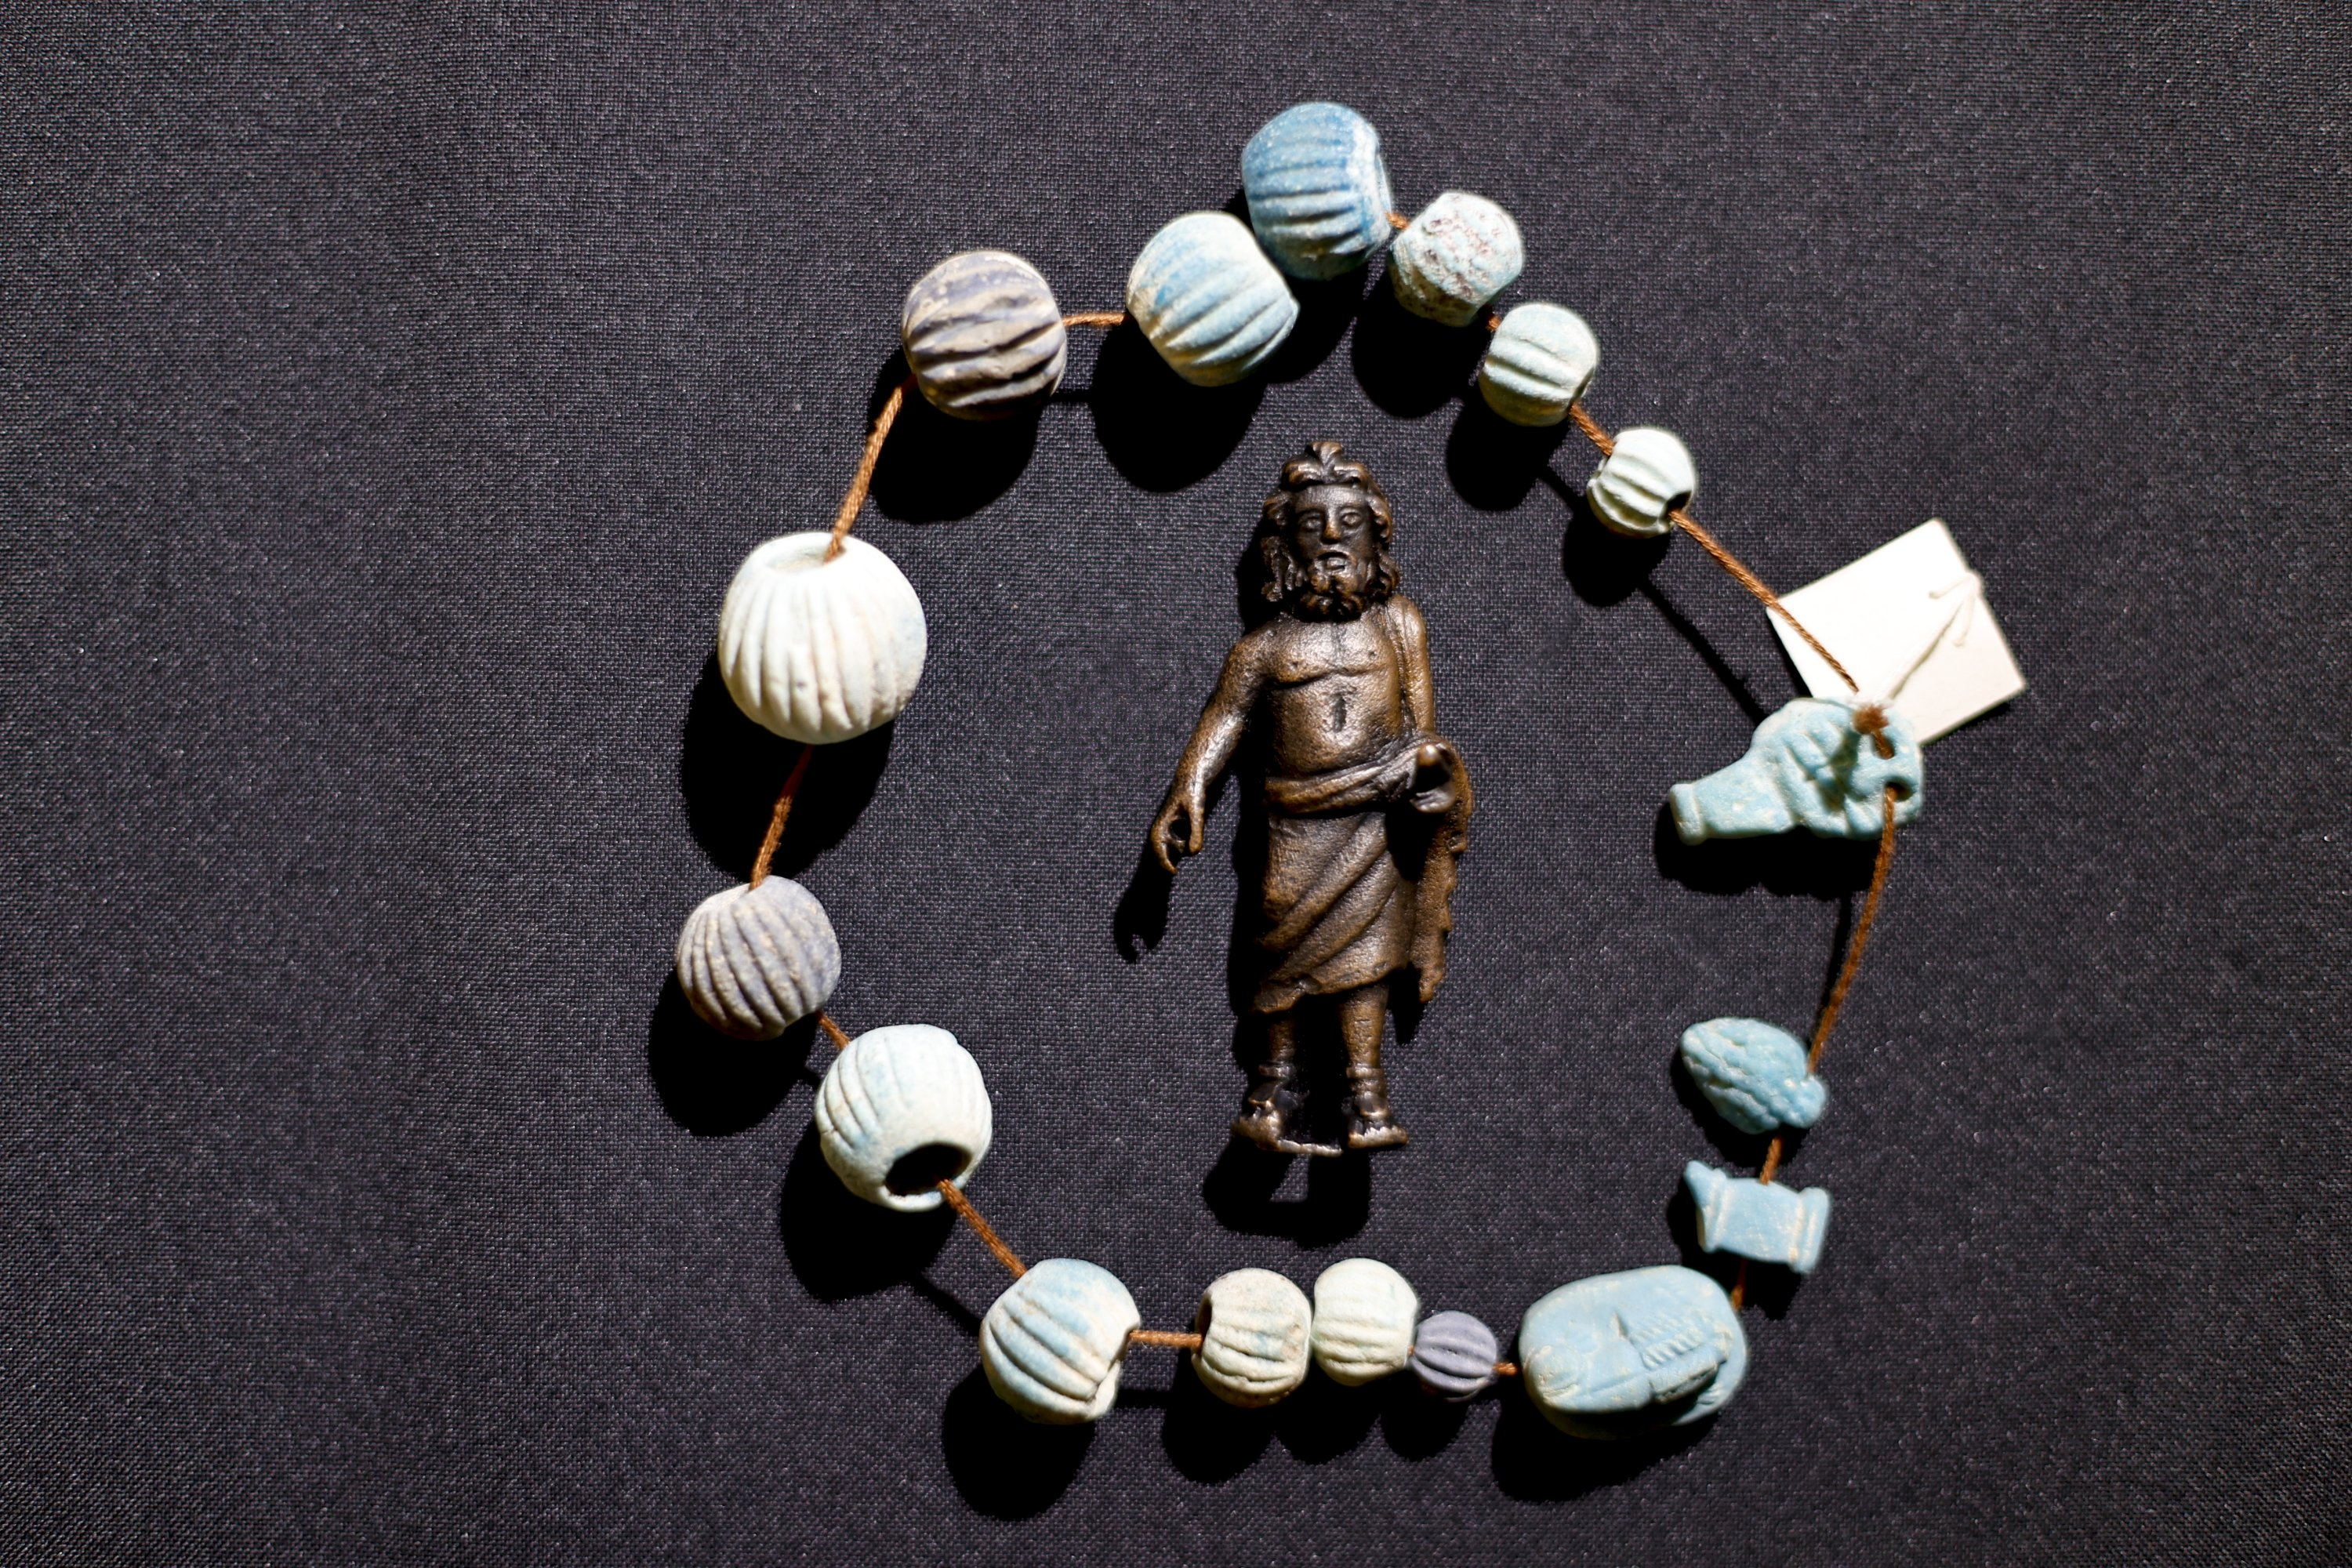 Some artifacts found in the ancient city of Phanagoria, Russia, Oct. 1, 2021. (AA Photo)